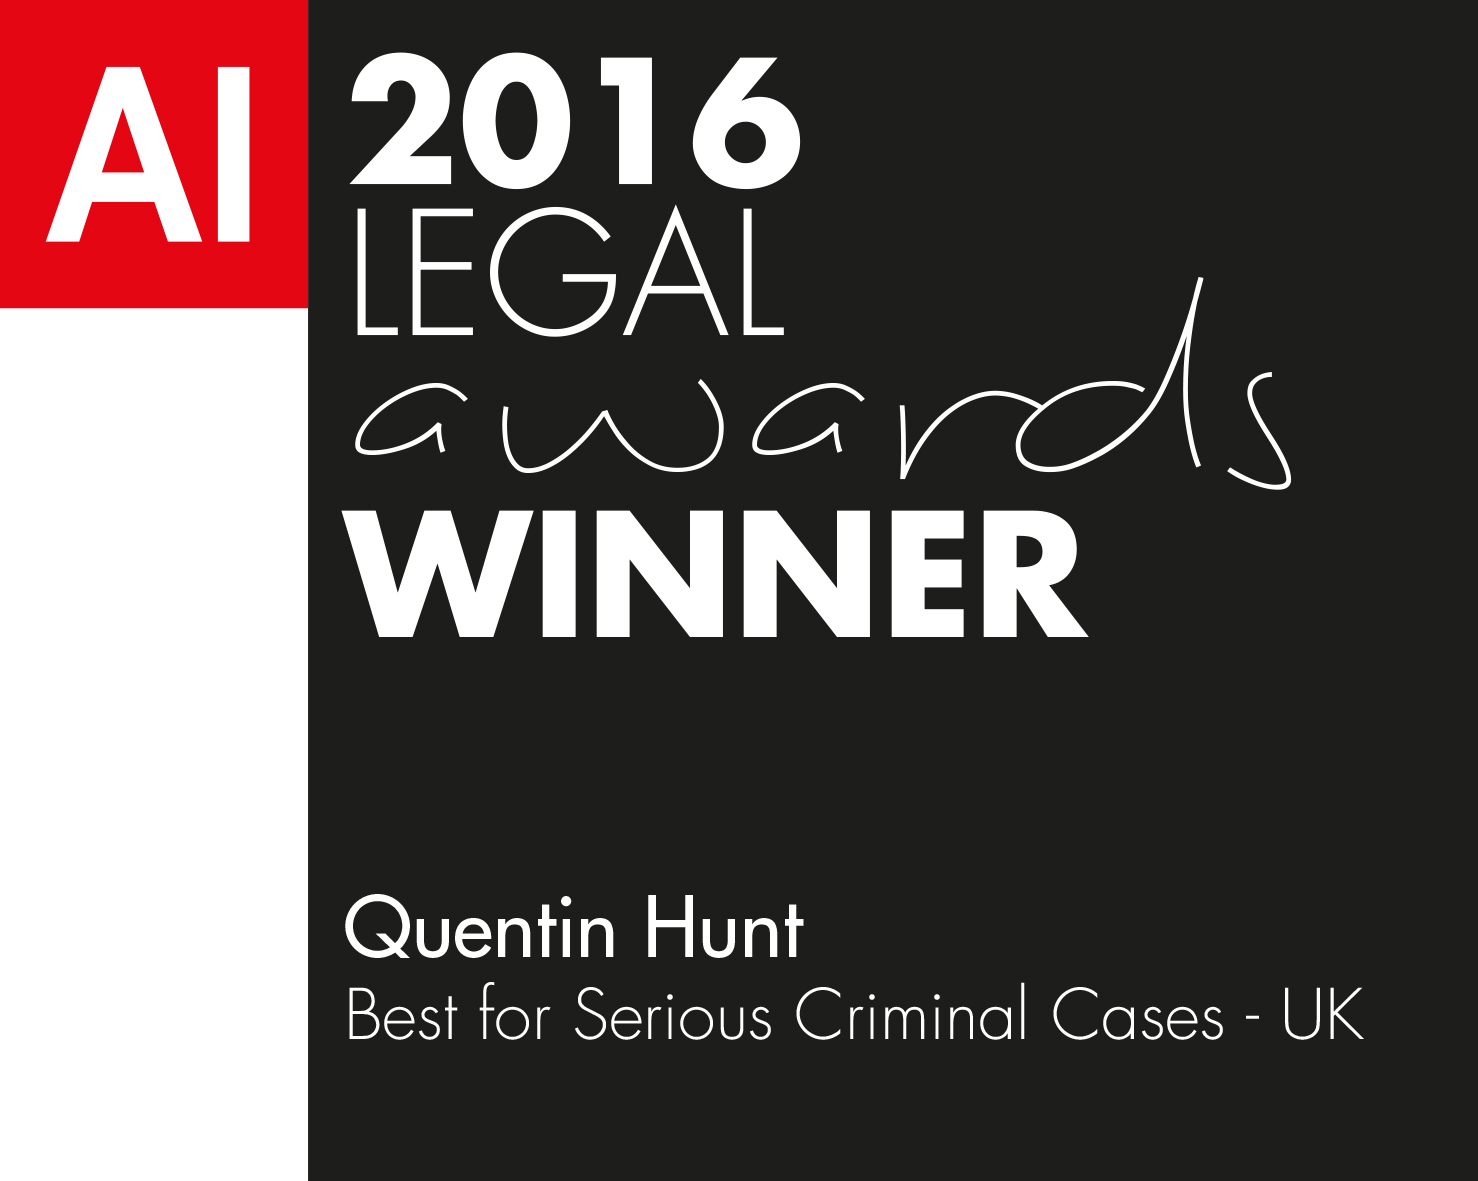 Quentin Hunt-Legal Awards 2016 (FD160088) winners logo